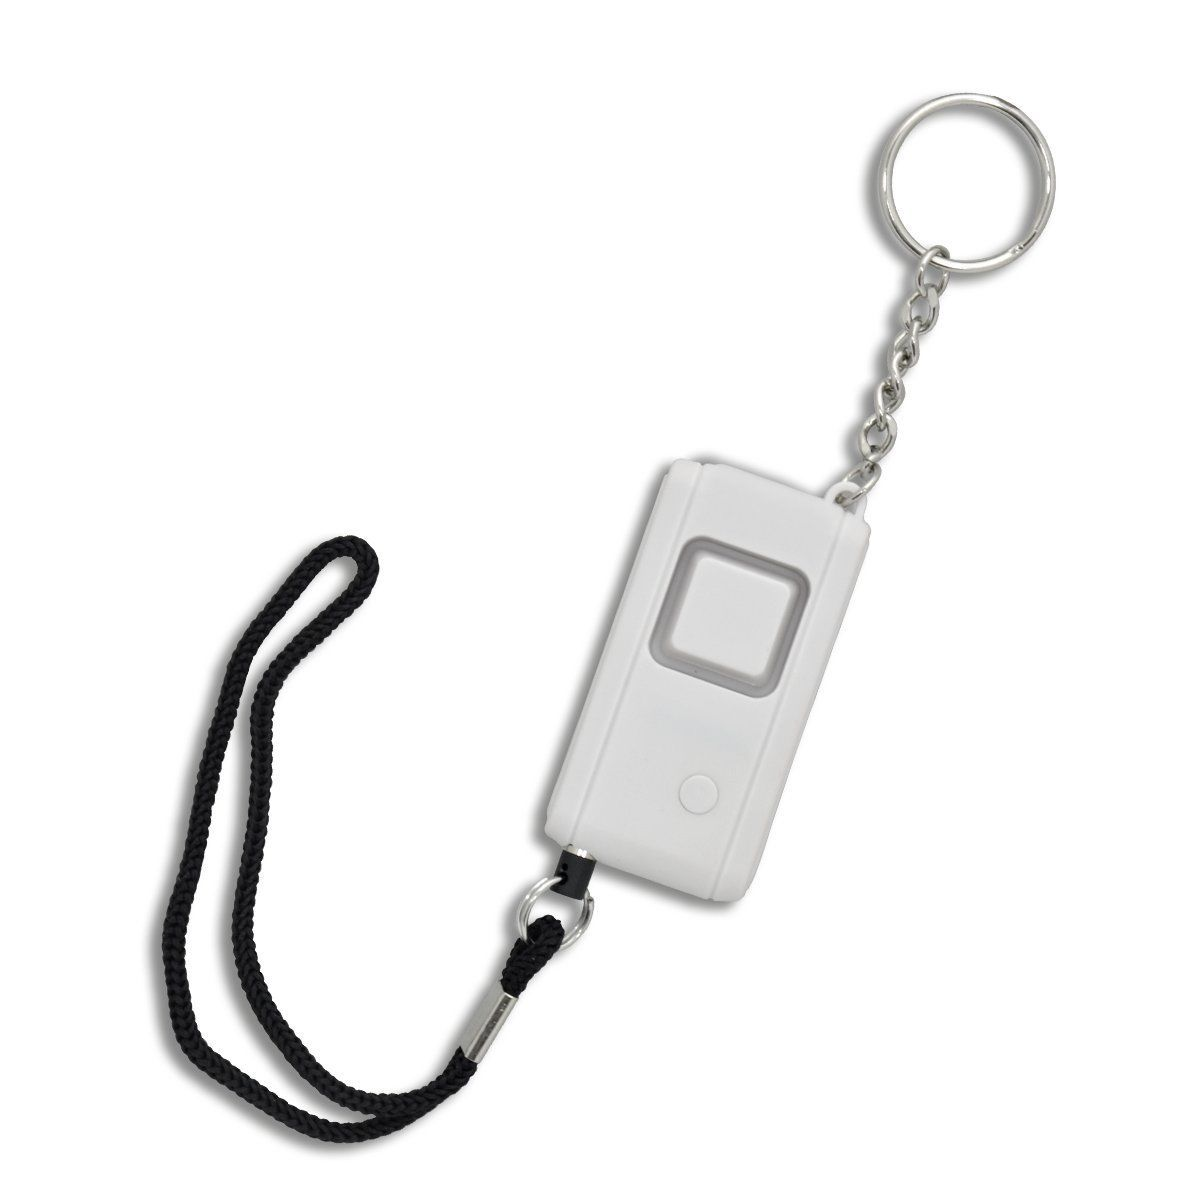 PA001 - OMG Personal Security Keychain Shrill Alarm